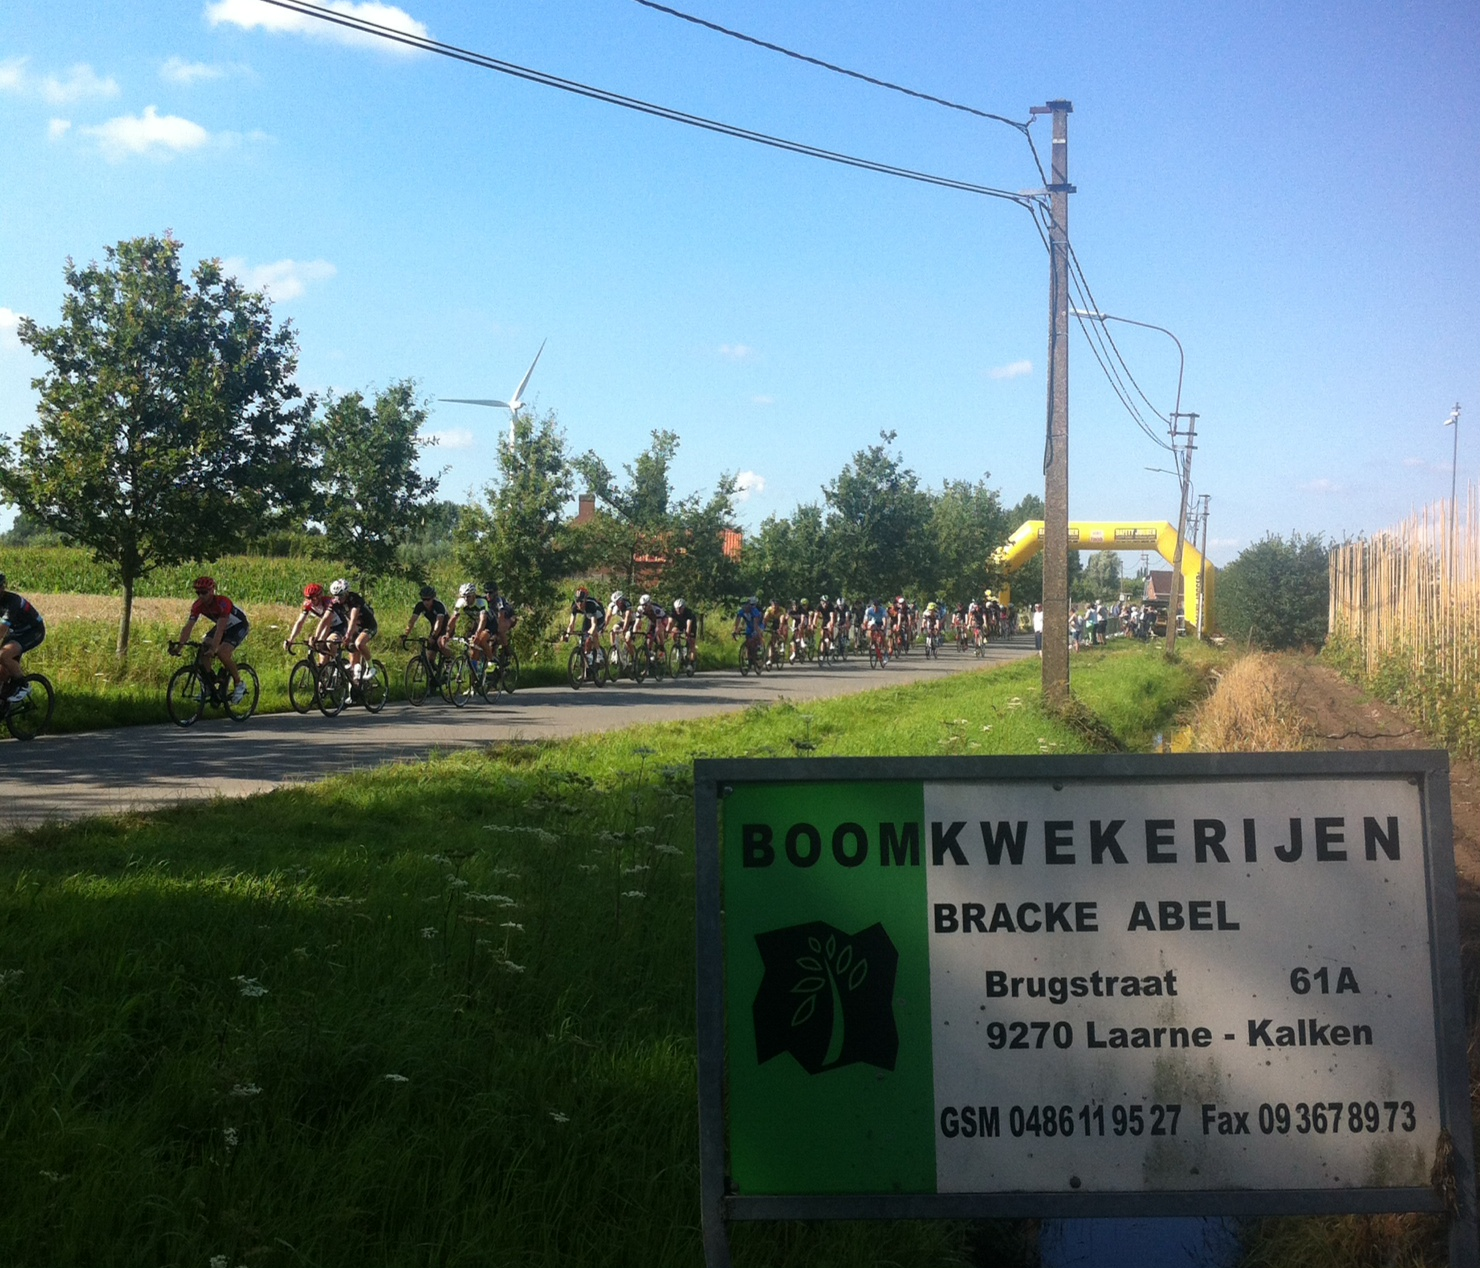 The Kalken Kermis races through the maize & hops fields in relative tranquillity. The E17 Freeway to Antwerp was just 750m away.